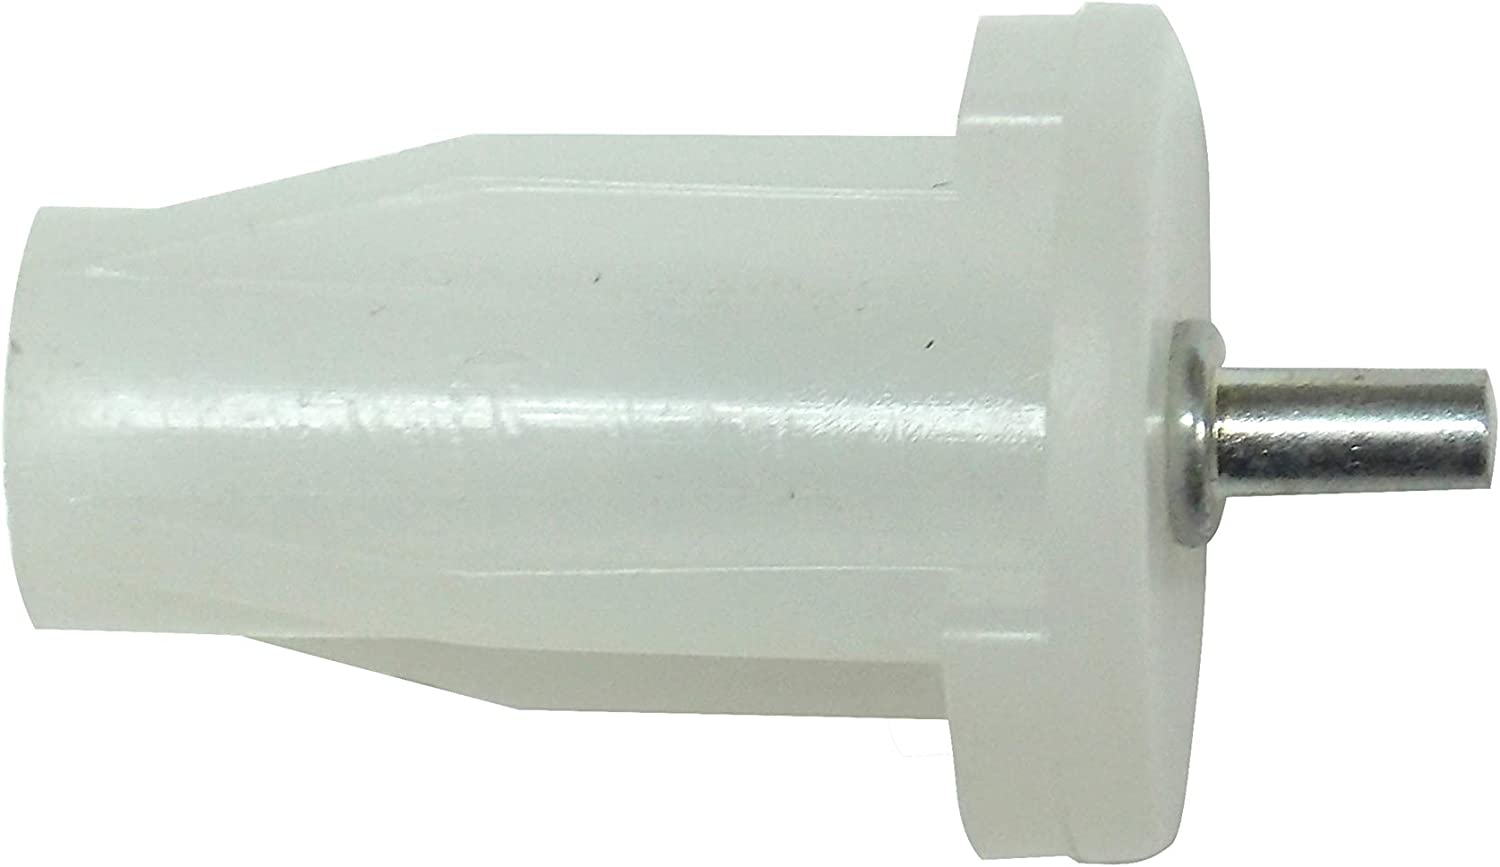 1 1//4 inch Window Shade END PLUG and Pin for 7//8 inch inside diameter CARDBOARD ROLLER from Shade Doctor of Maine